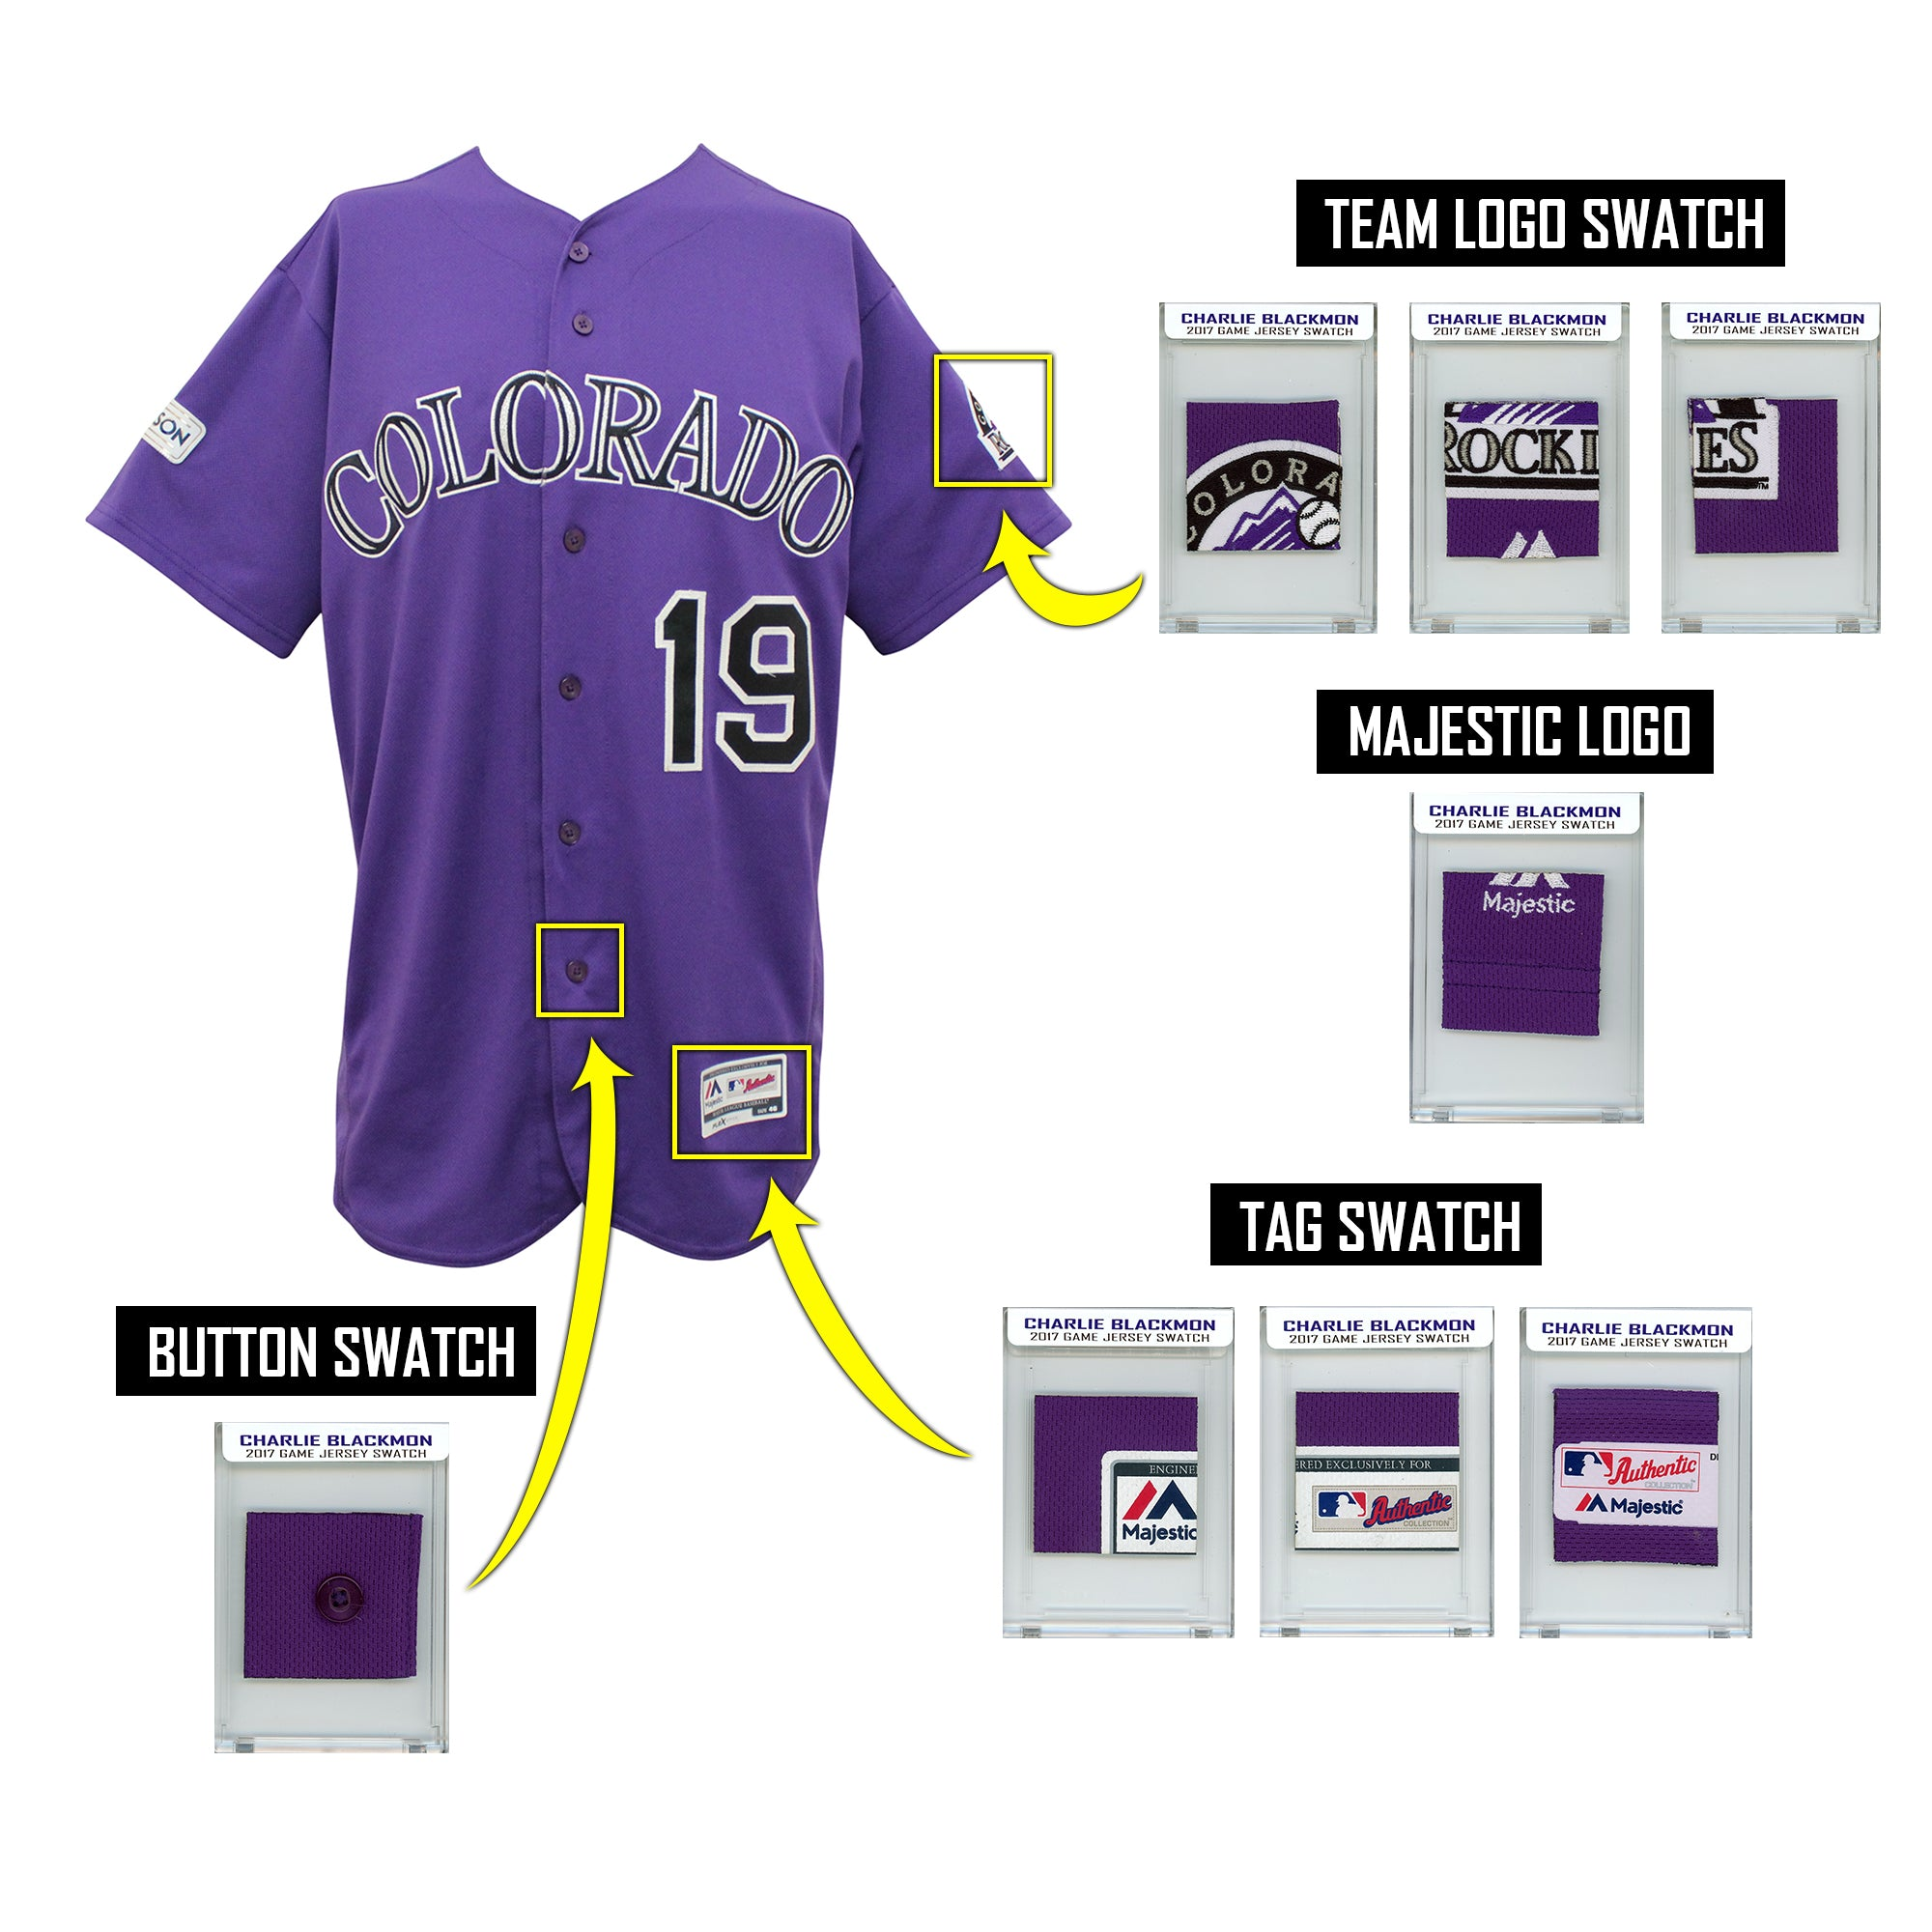 CHARLIE BLACKMON 2017 ROCKIES GAME WORN MYSTERY SEALED SWATCH BOX! PATCHES ONLY!